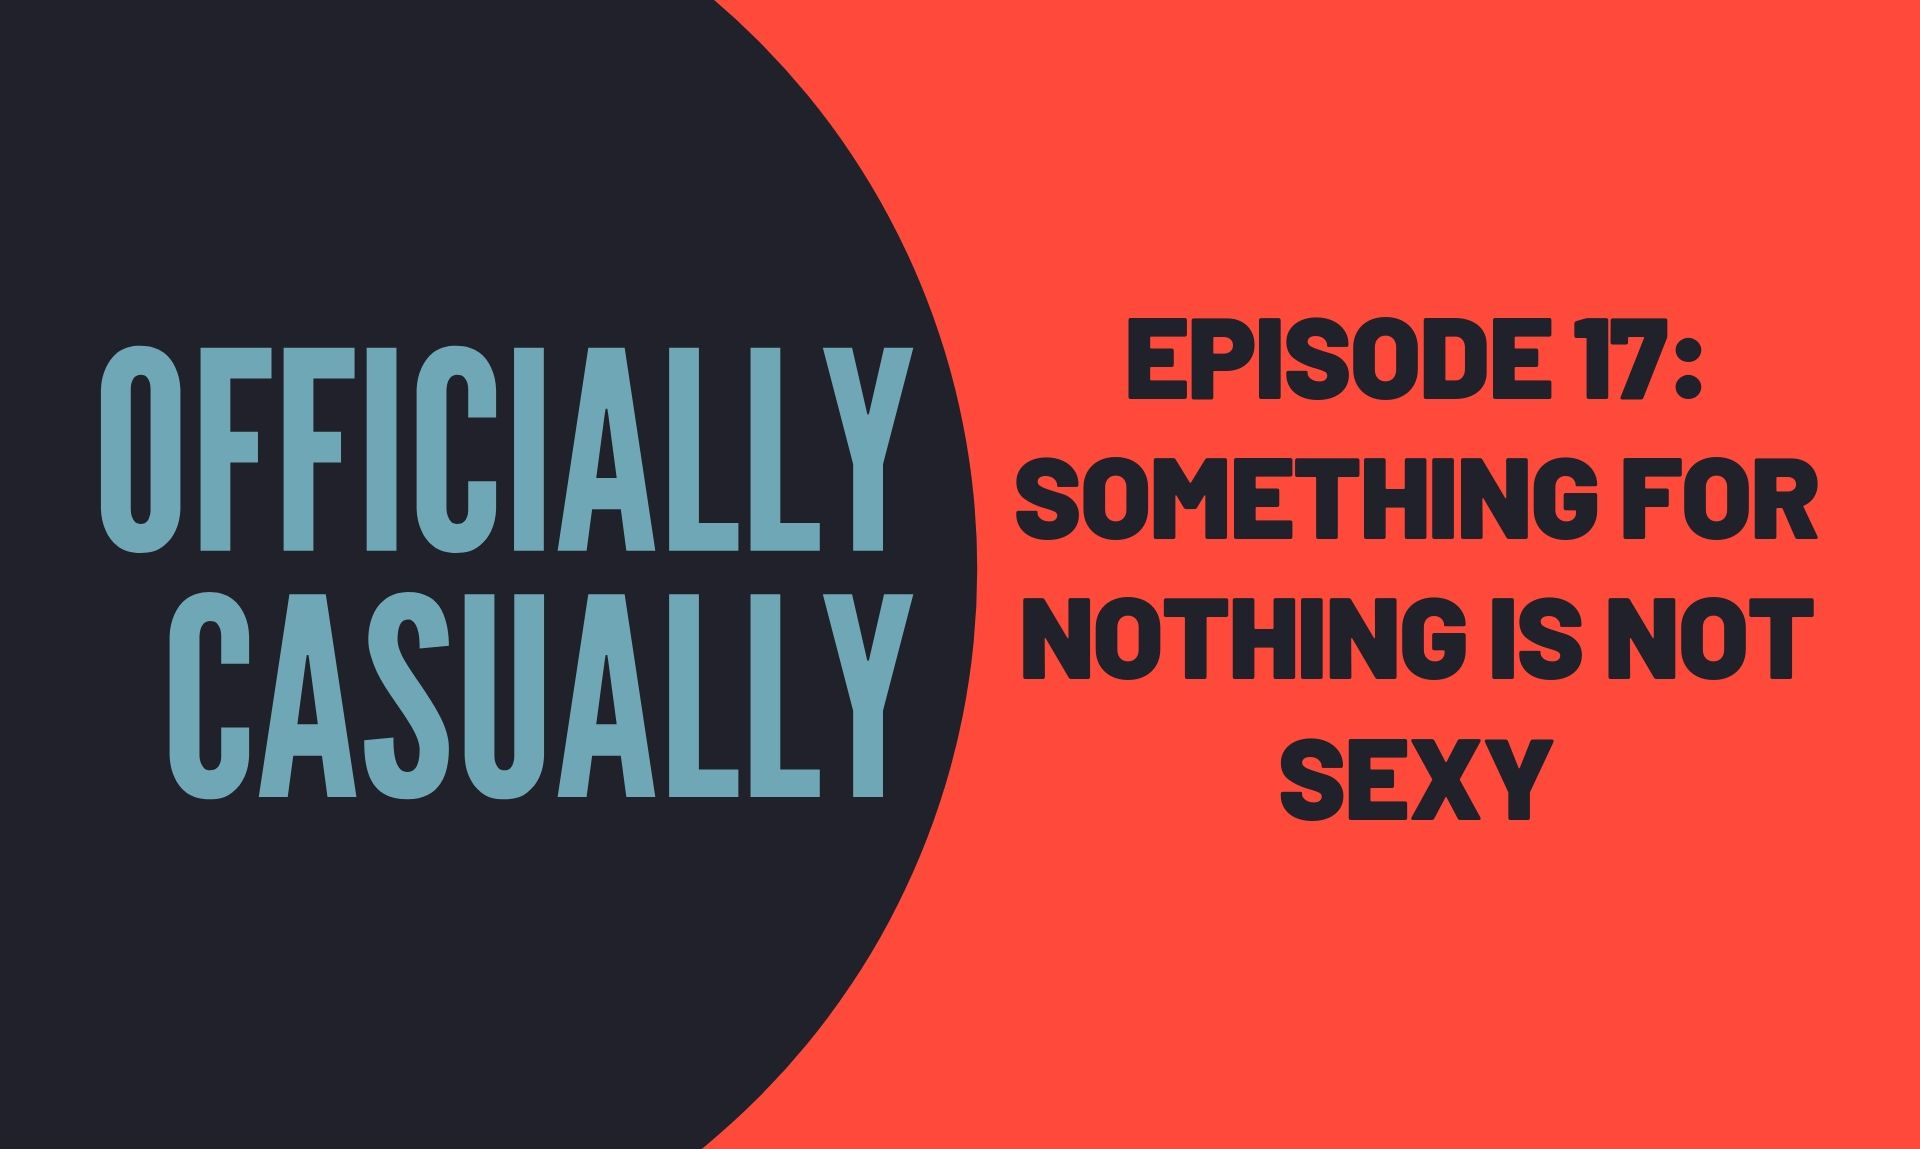 #17 EPISODE - SOMETHING FOR NOTHING IS NOT SEXY